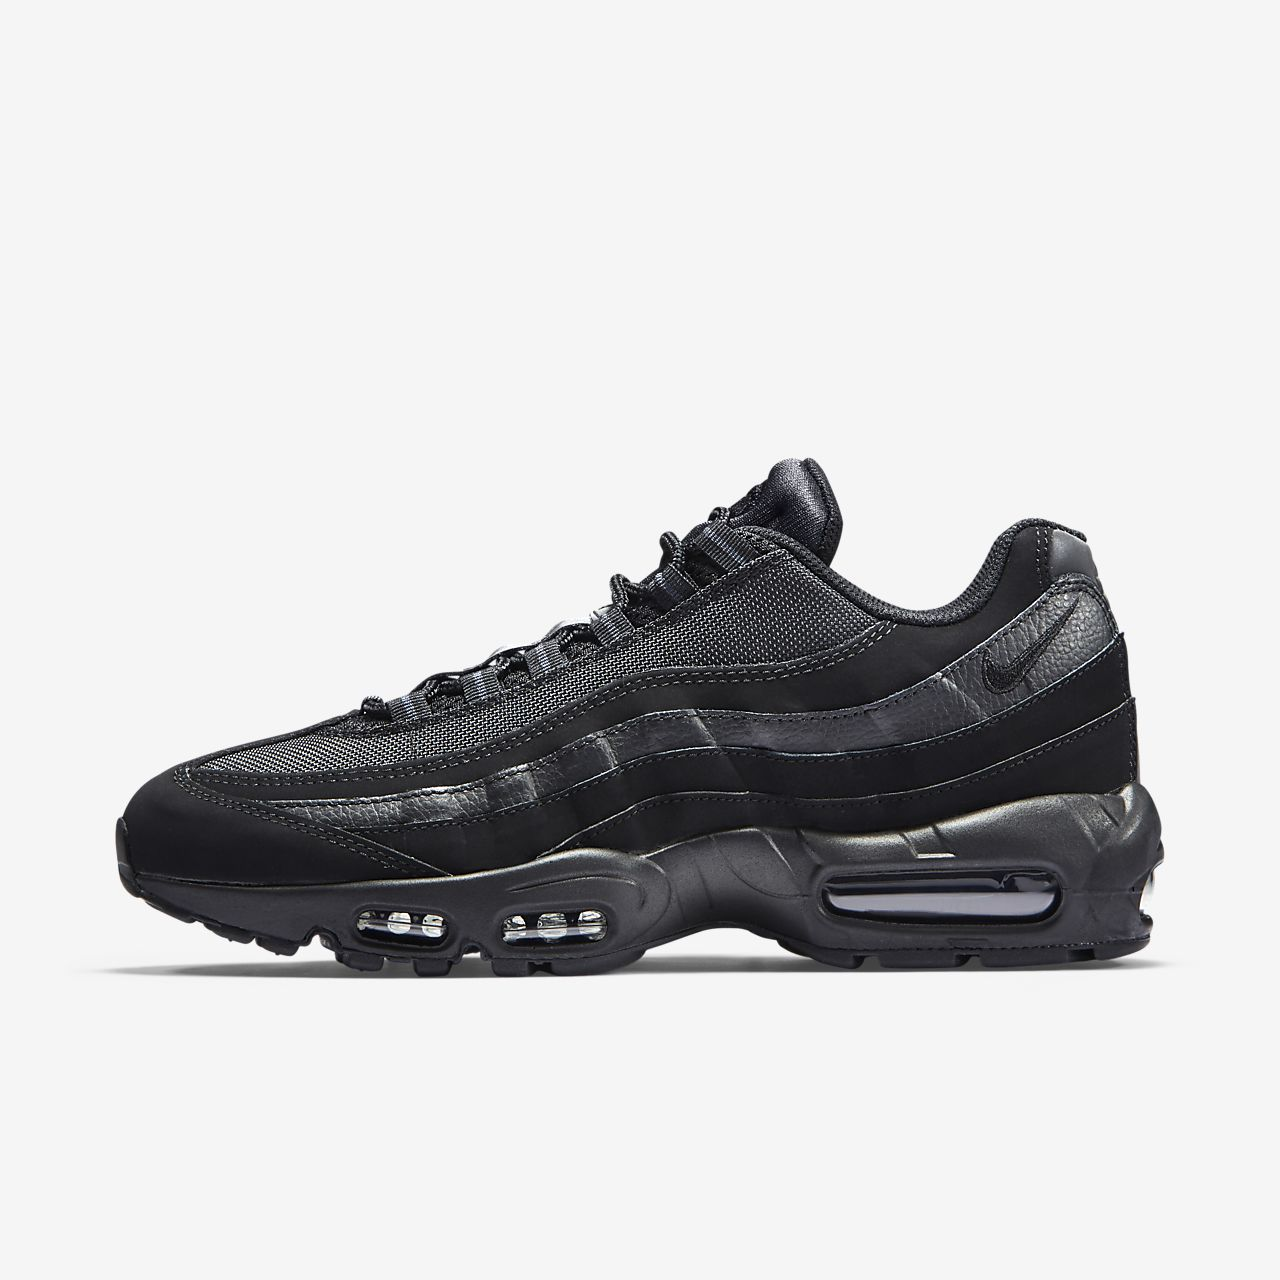 new product 749b3 32552 ... Nike Air Max 95 Herrenschuh